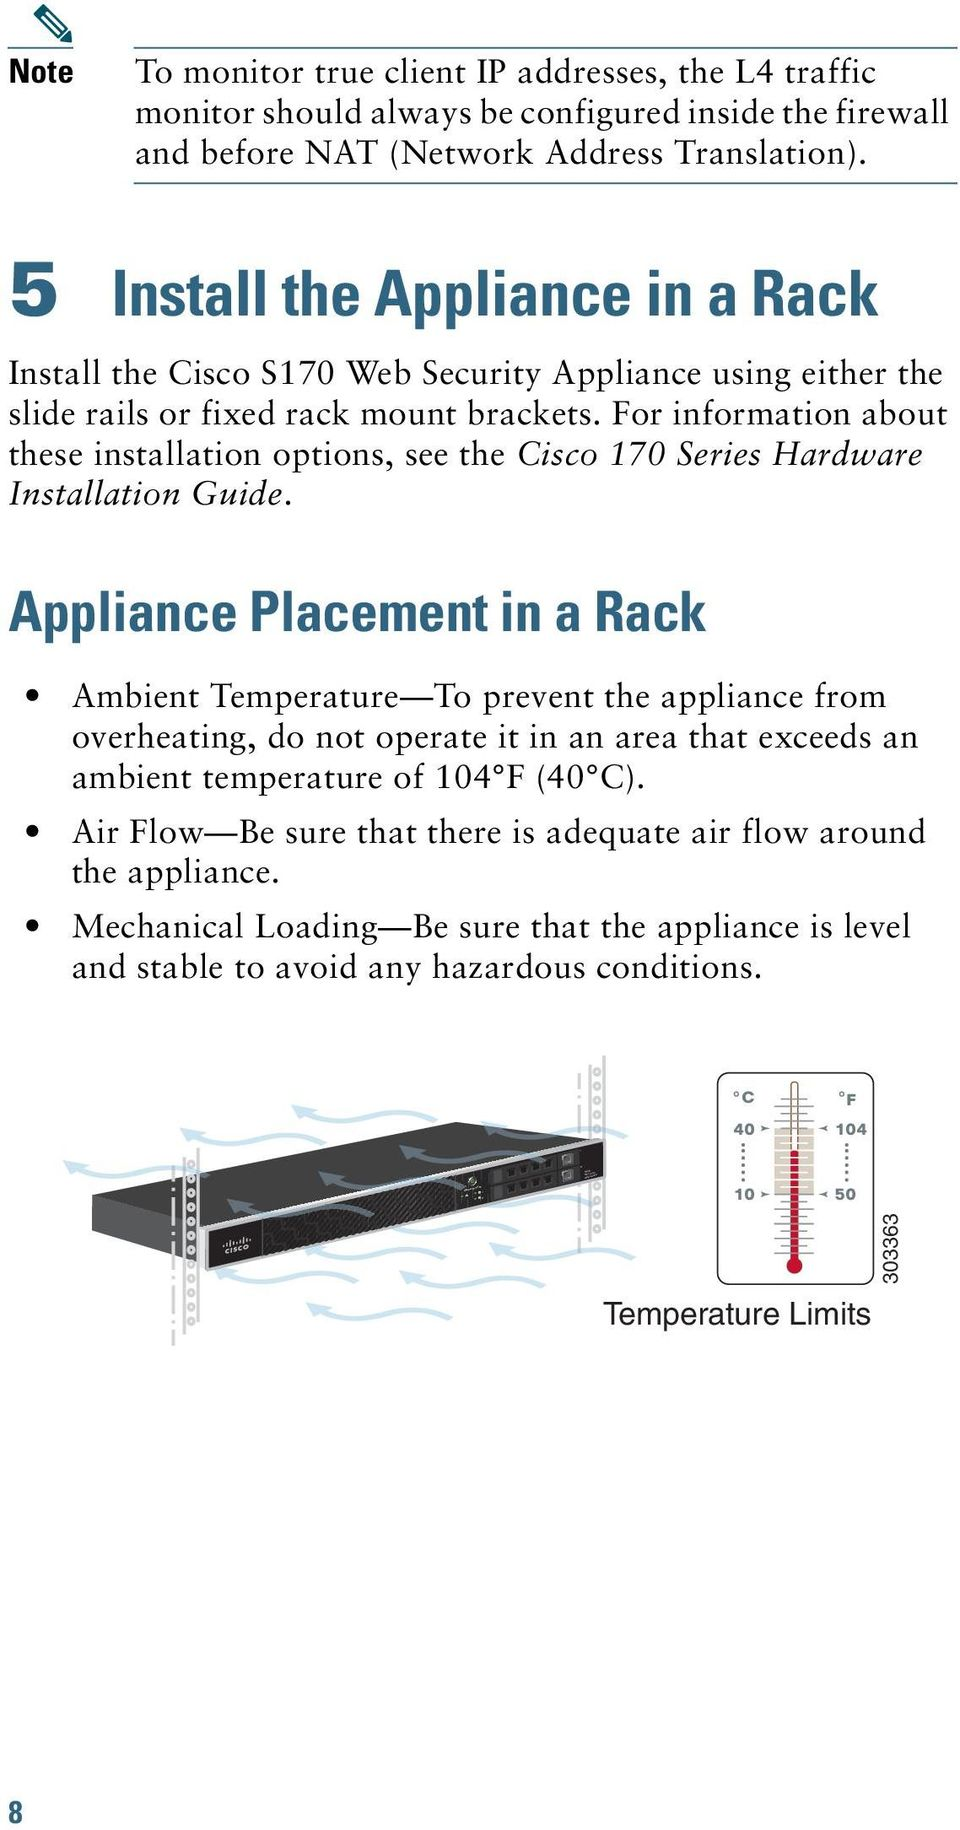 For information about these installation options, see the Cisco 170 Series Hardware Installation Guide.